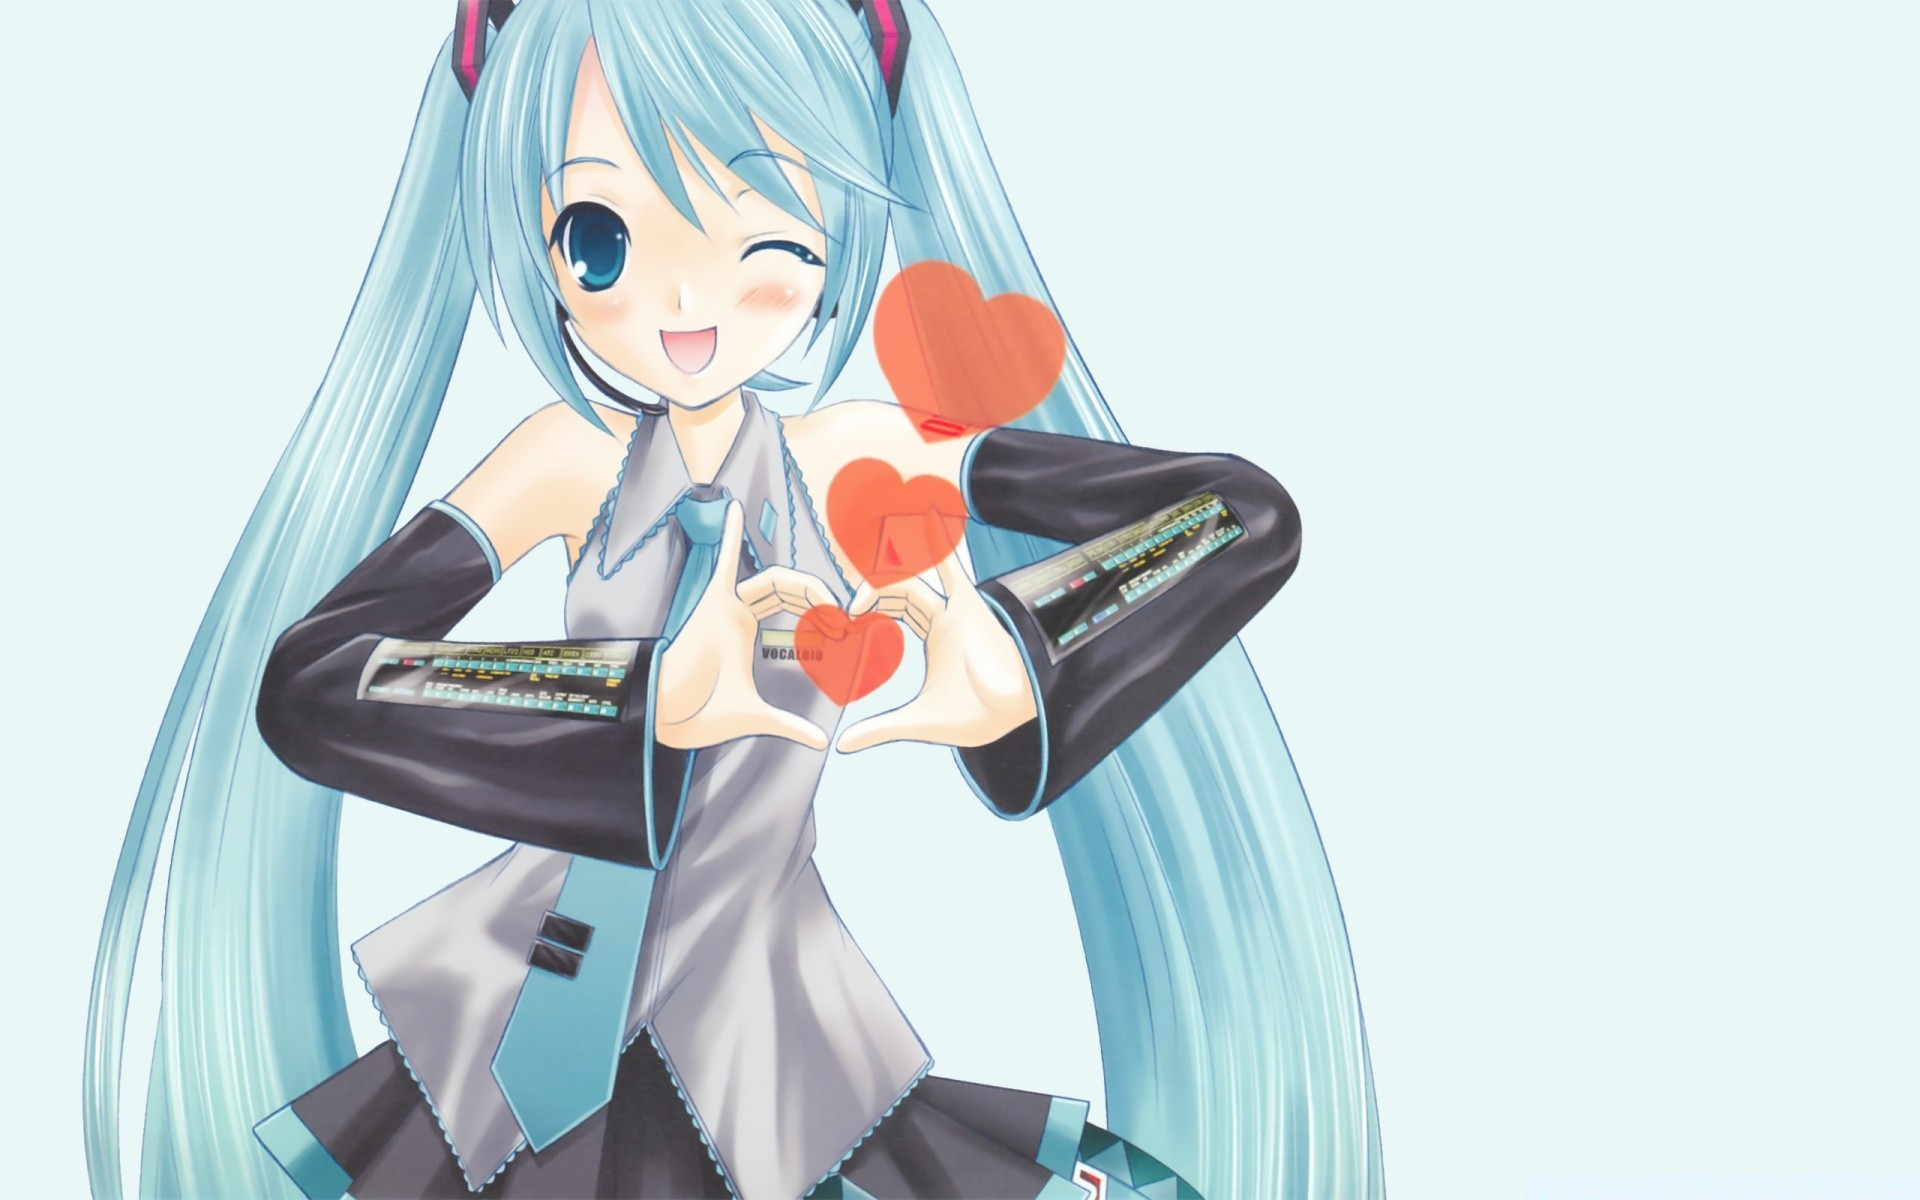 Hatsune Miku In Love IPhone Wallpapers For Free